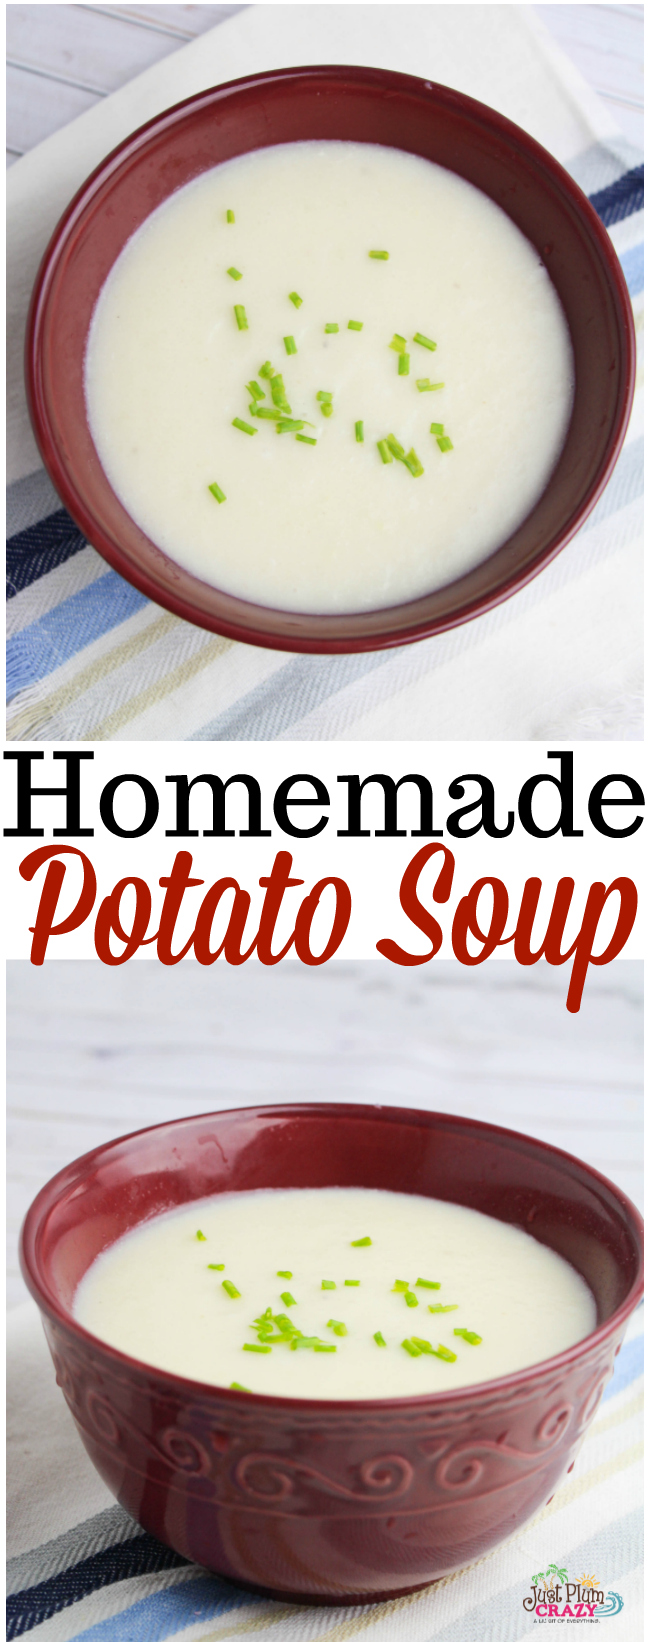 With the taste of bacon, onion and potatoes, the Yummy Homemade Potato Soup Recipe is perfect for the cold weather or Christmas Eve Wigilia dinner.